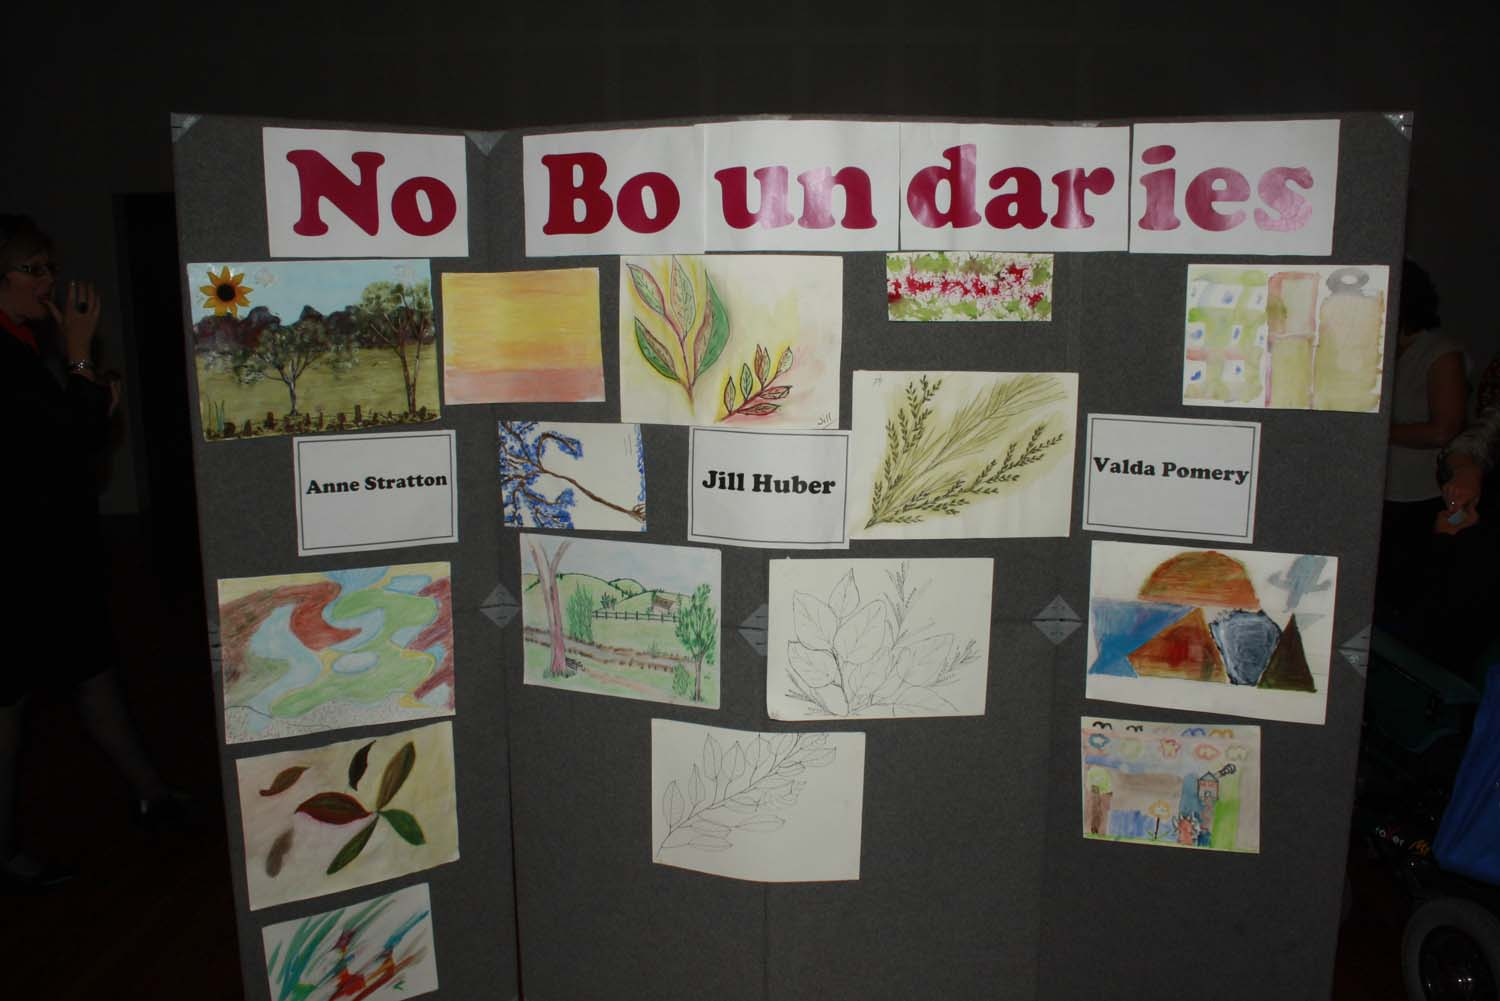 Artwork on exhibition from the No Boundaries Project visual arts group